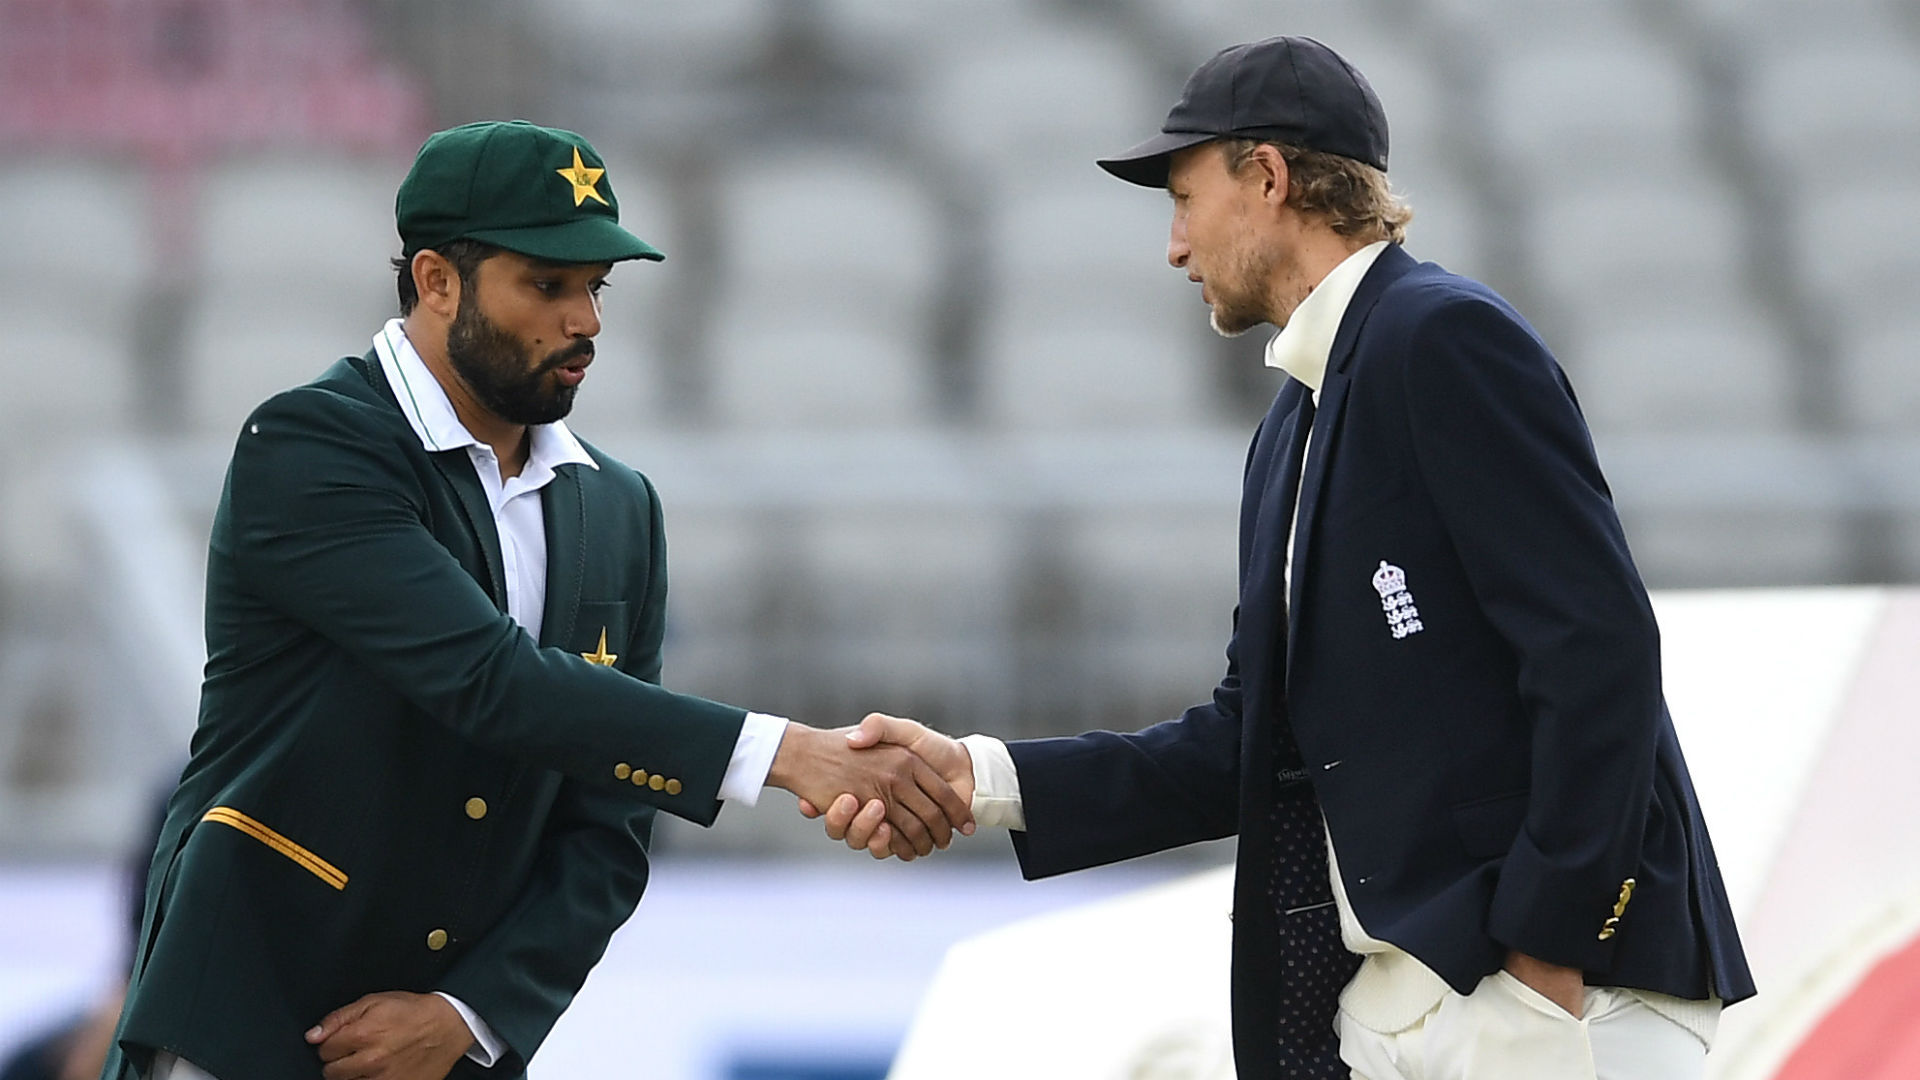 Pakistan pick two leg-spinners and opt to bat, England unchanged